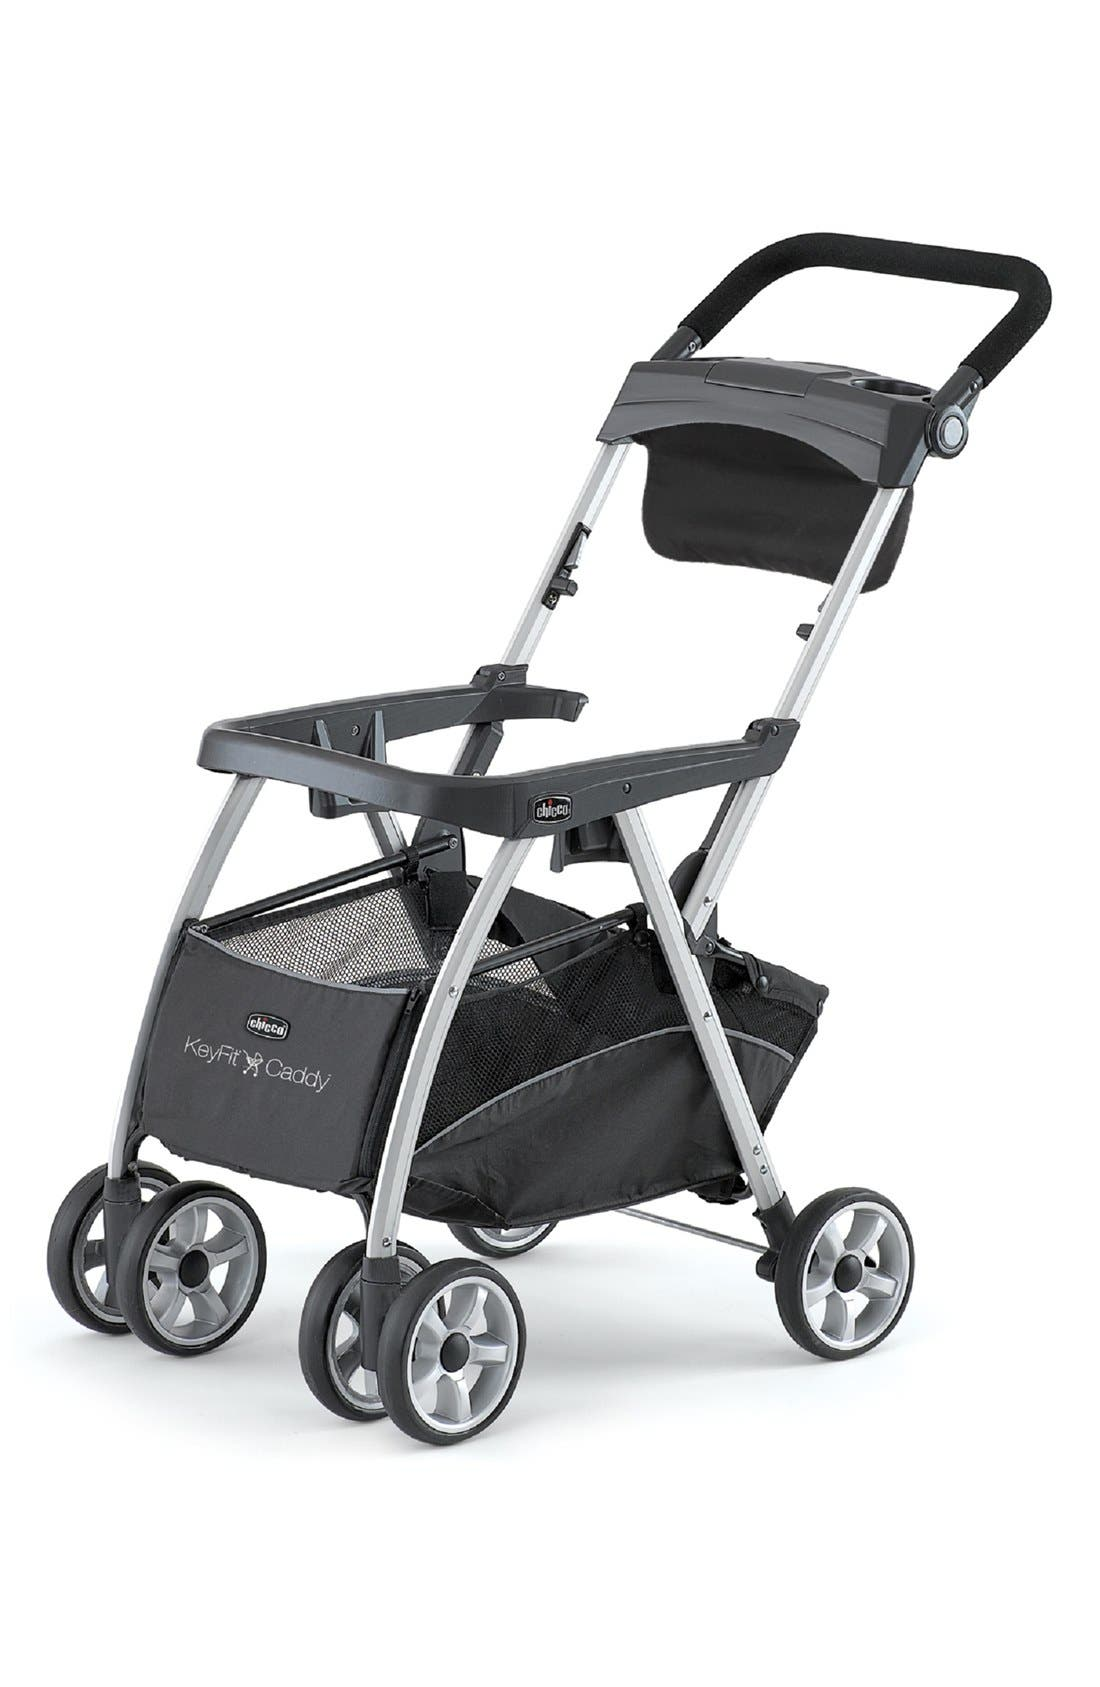 Main Image - Chicco 'KeyFit® Caddy™' Stroller